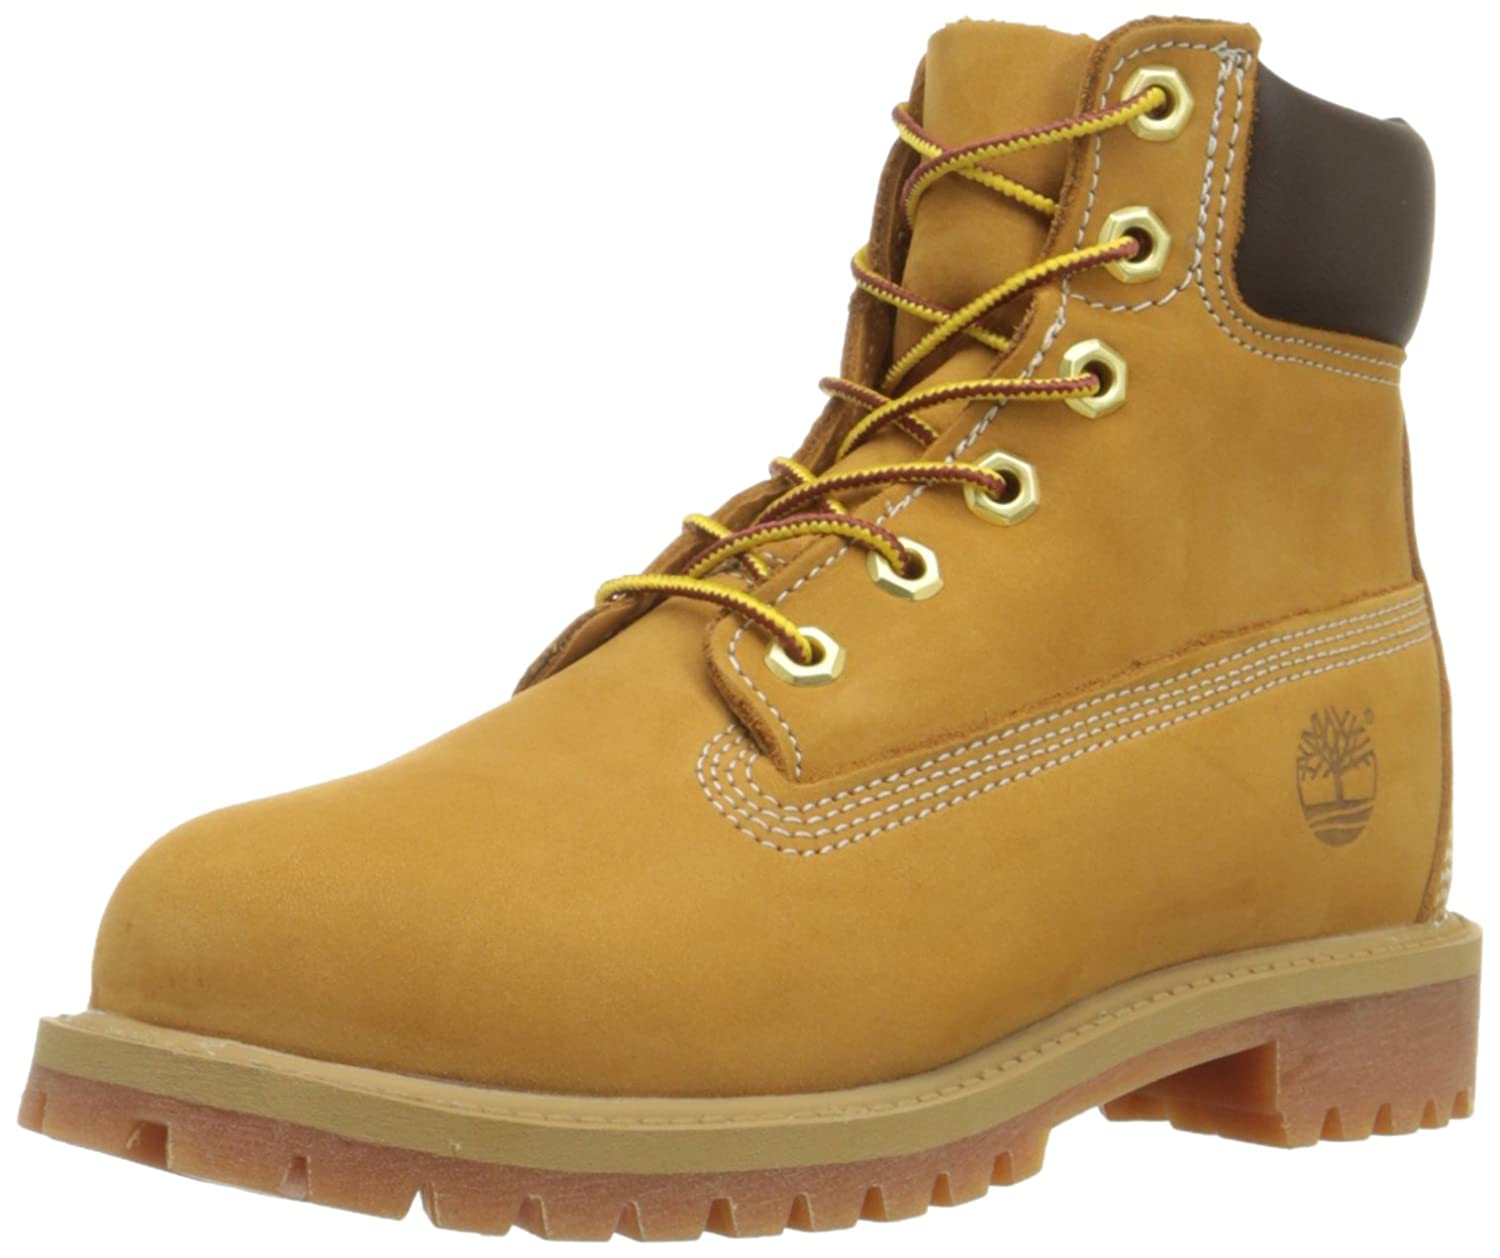 Timberland Boy's Leather Sneakers: Buy Online at Low Prices in India Amazon.in